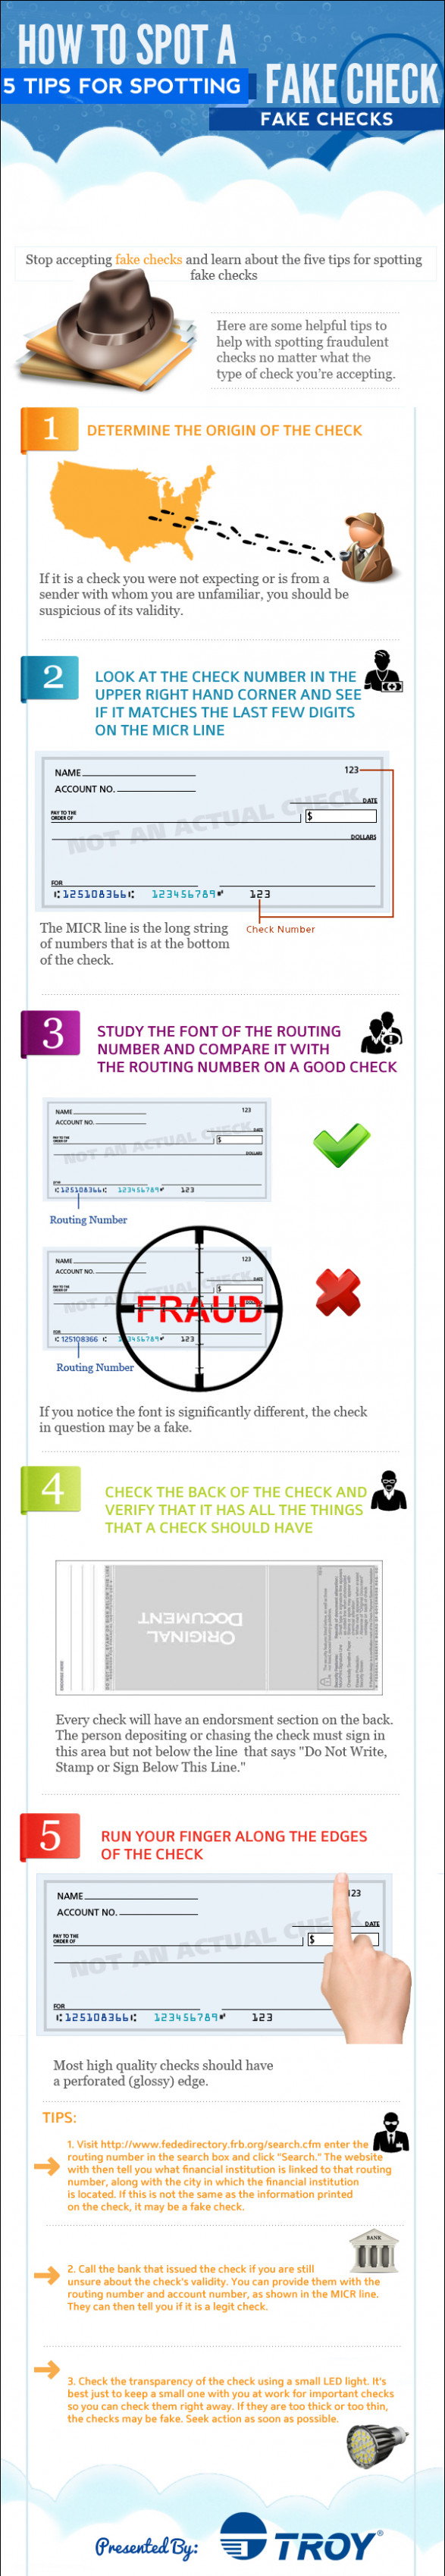 How to Spot a Fake Check